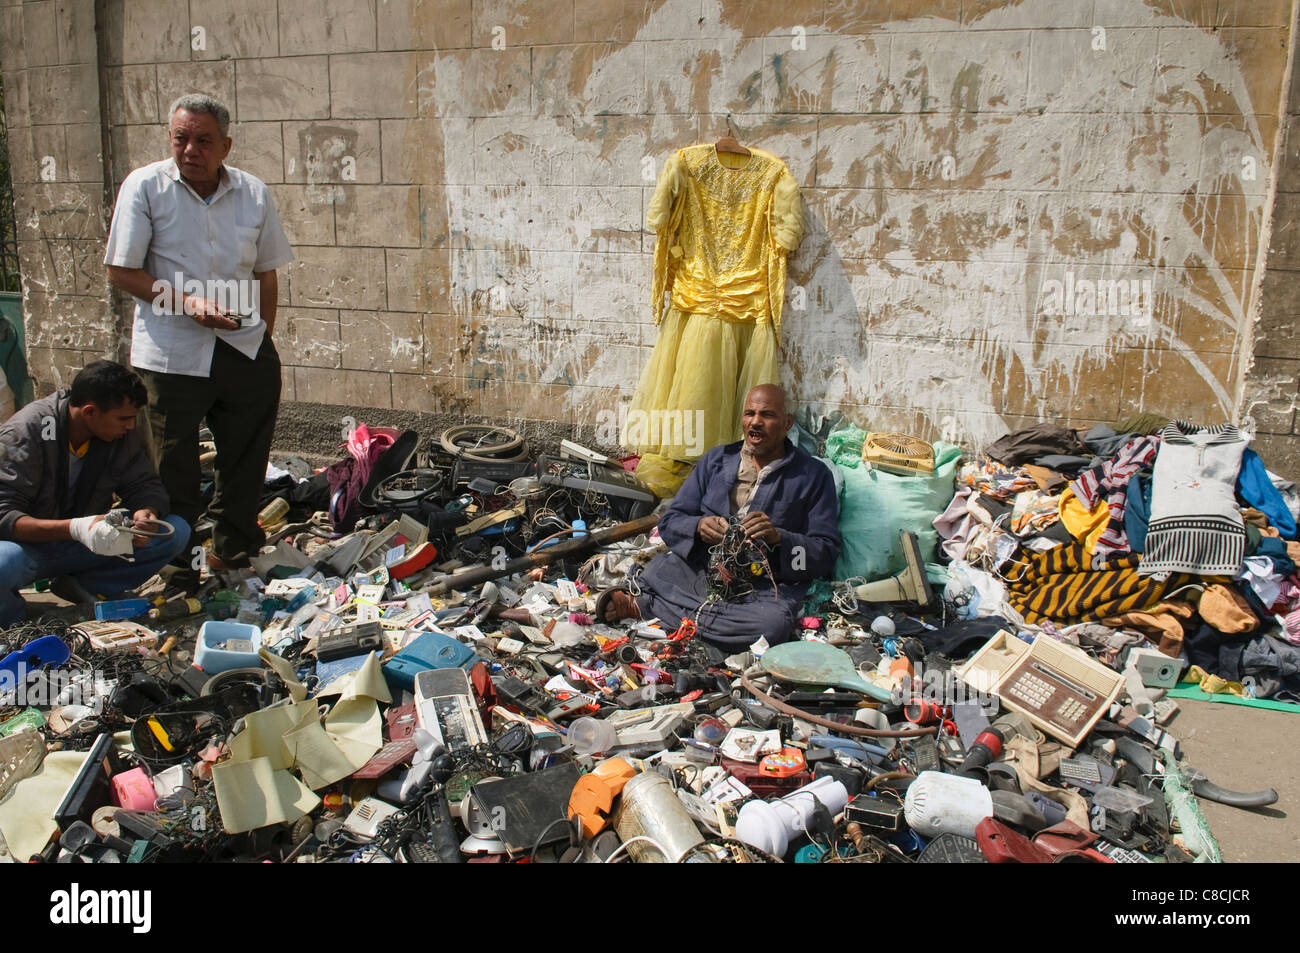 junk for sale at the Souk al Goma Friday Market in Cairo Egypt - Stock Image